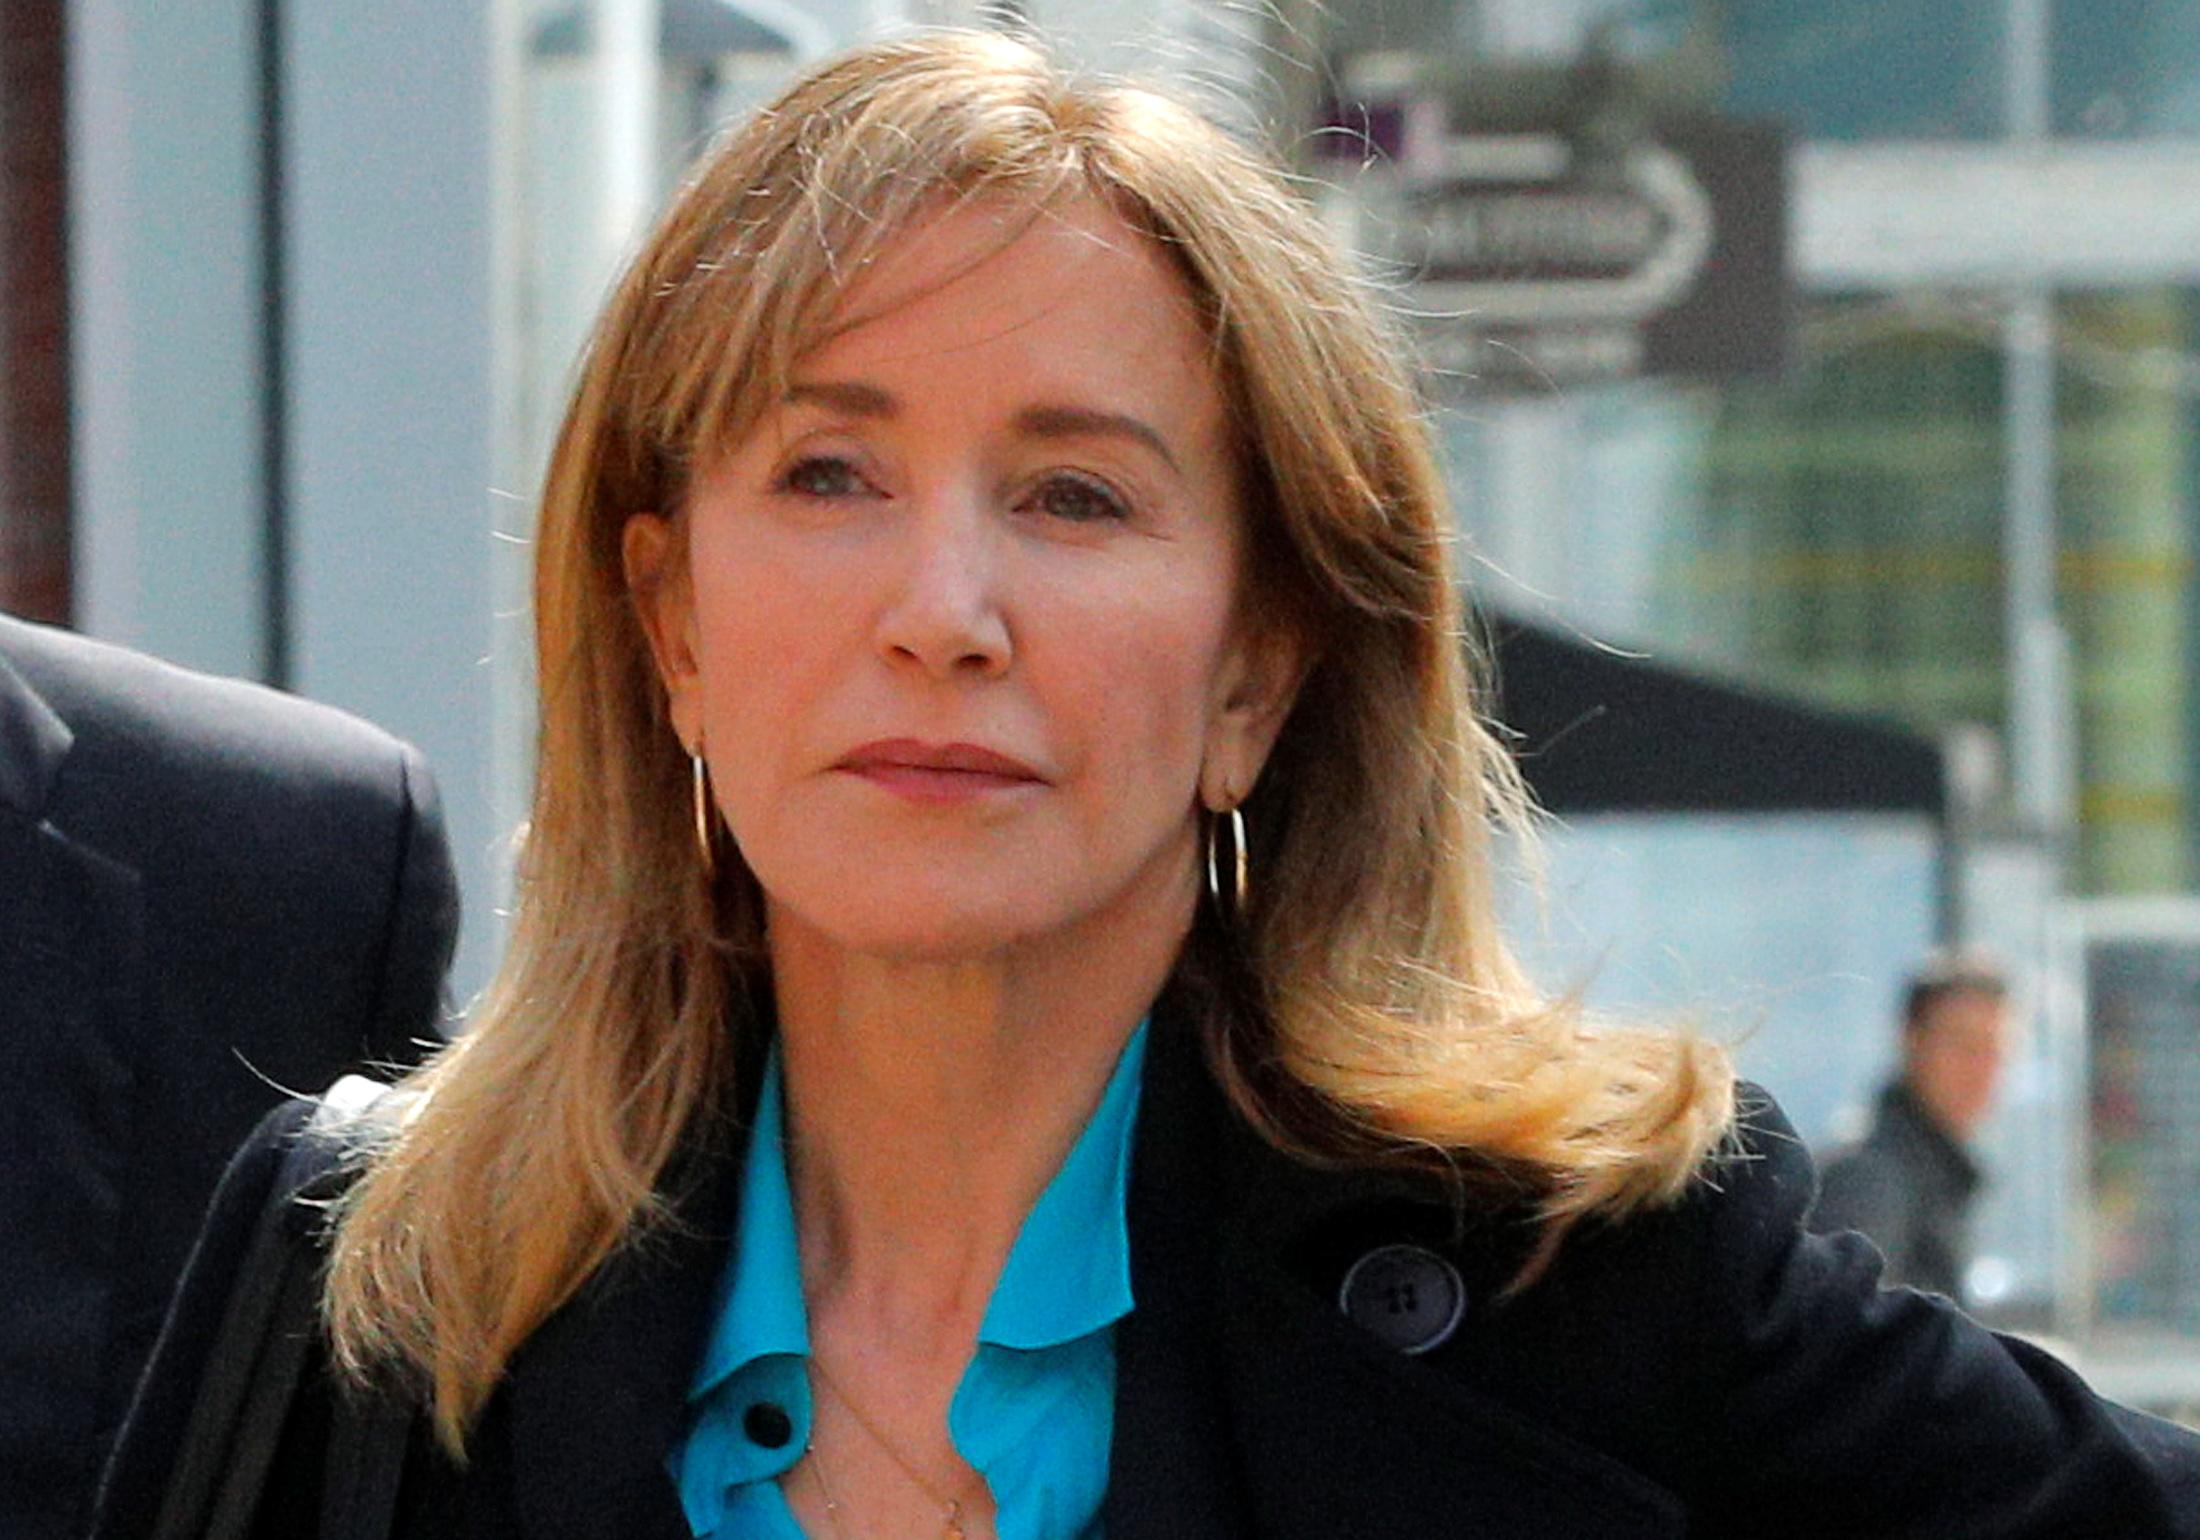 Felicity Huffman wants passport returned as she completes college admissions scandal sentence